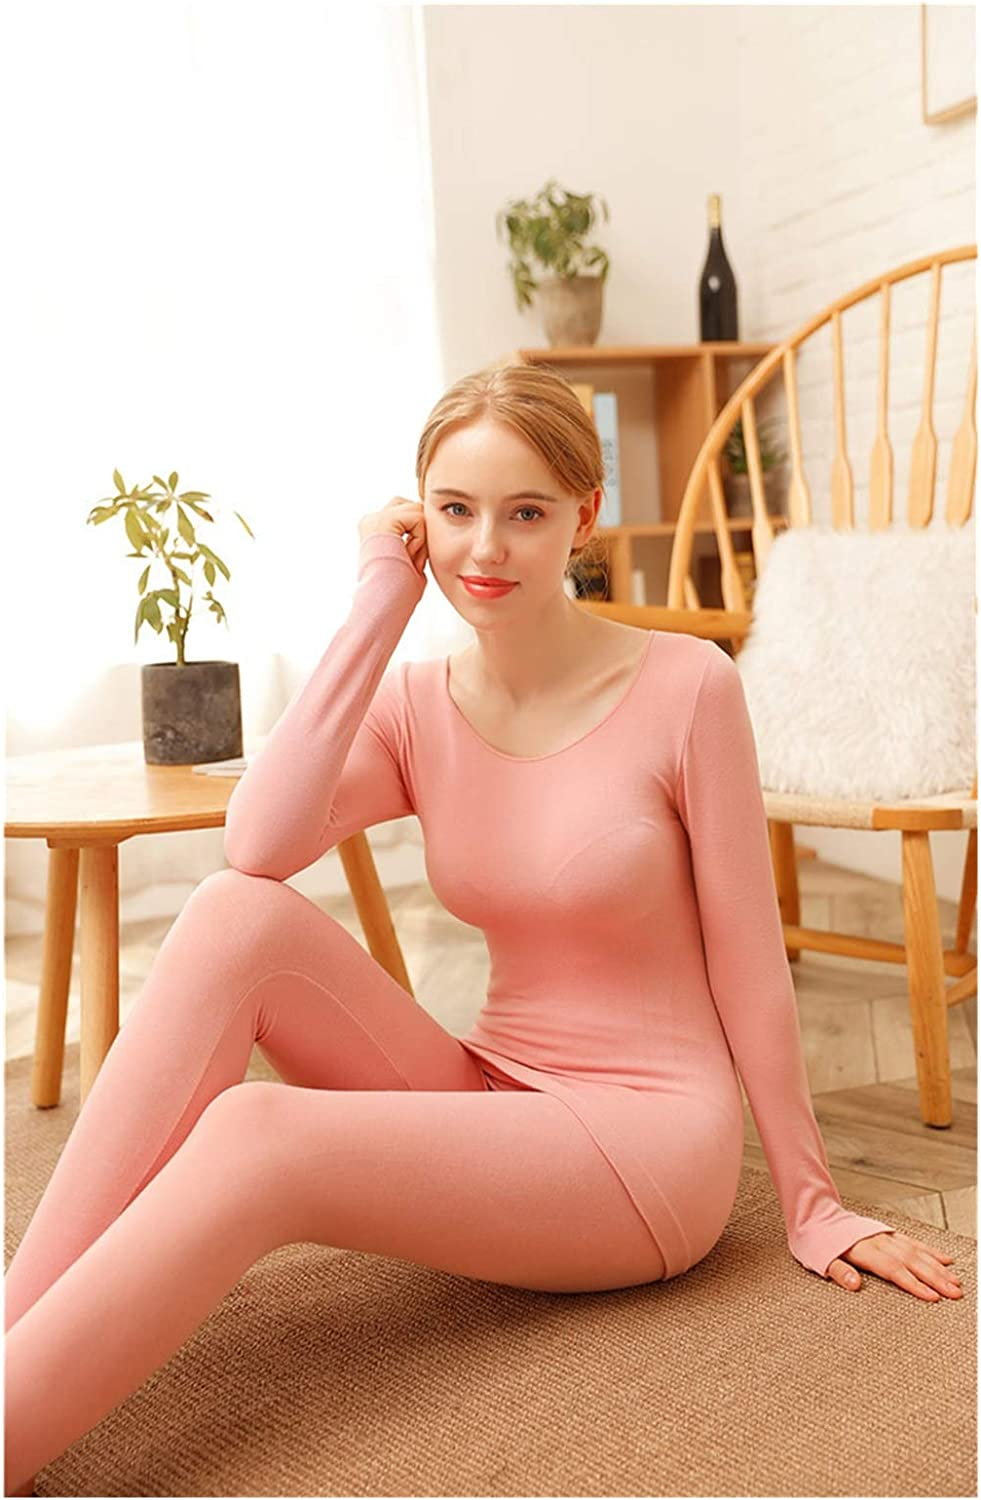 Women's Thermal Underwear Female Long Johns Winter Thermal Set Warm Clothes for Ladies Breathable Seamless Body Suit (Color : 6, Size : One Size)